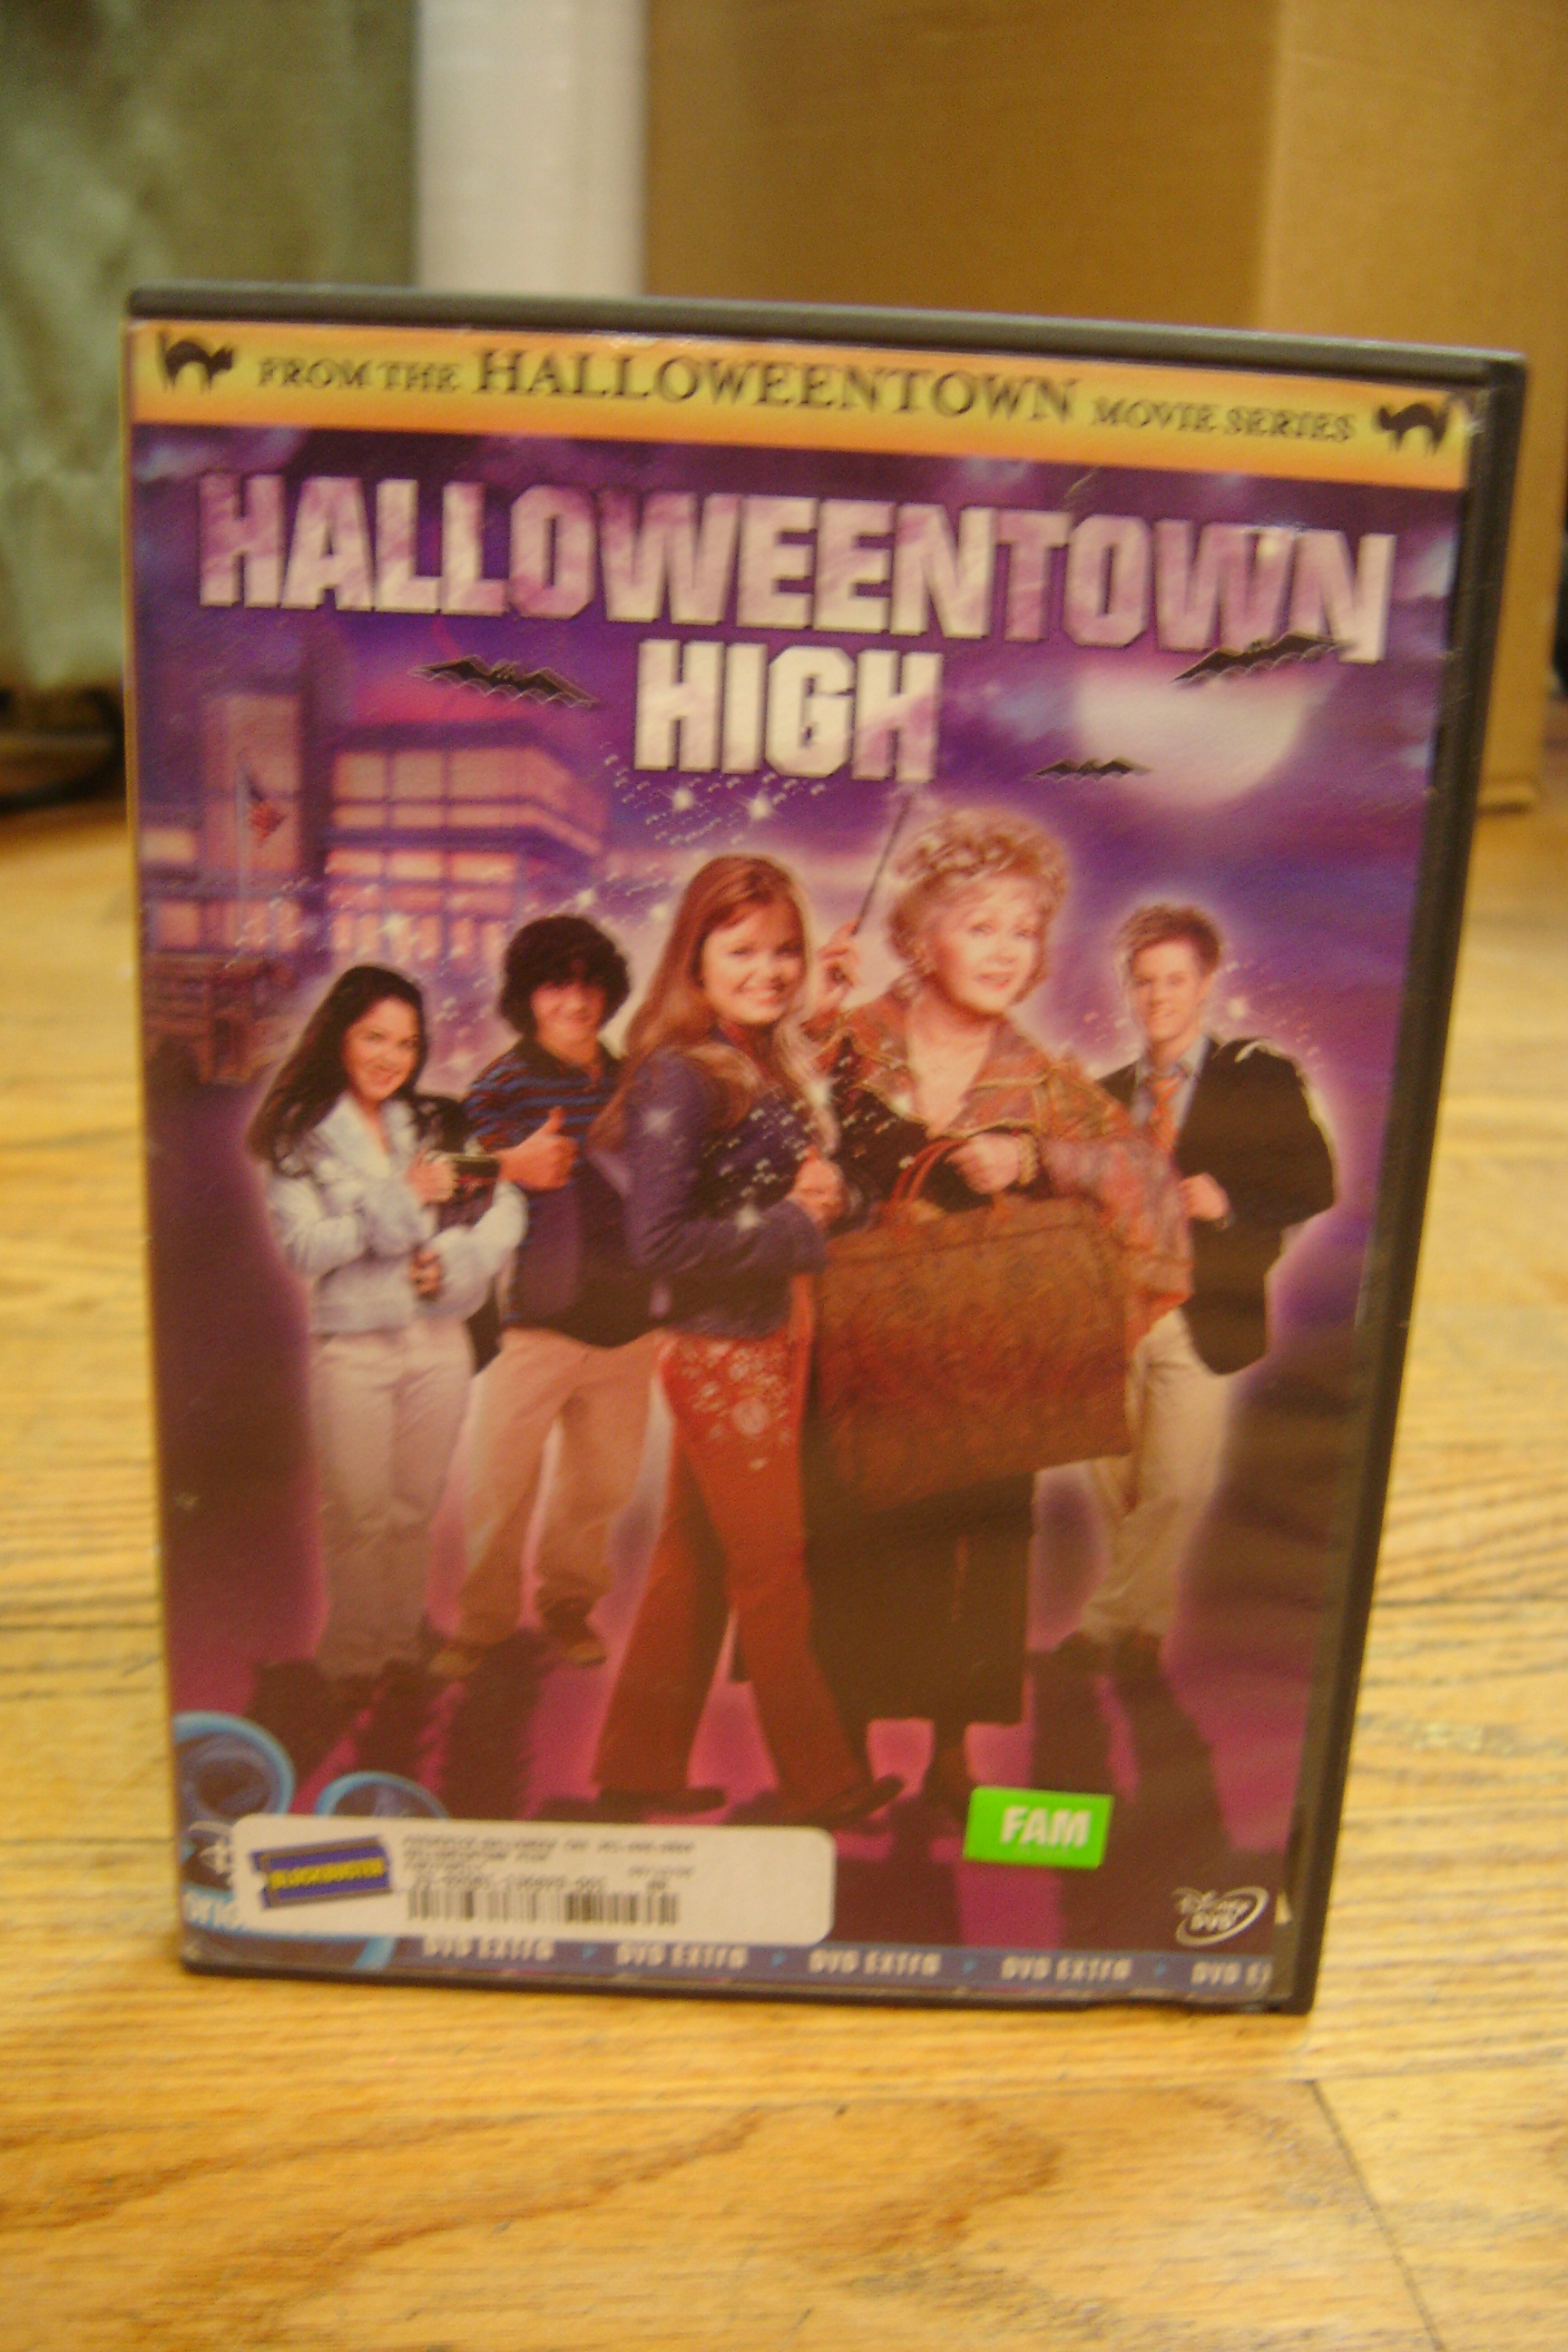 Disneys-Halloweentown-High-DVD_189609A.jpg